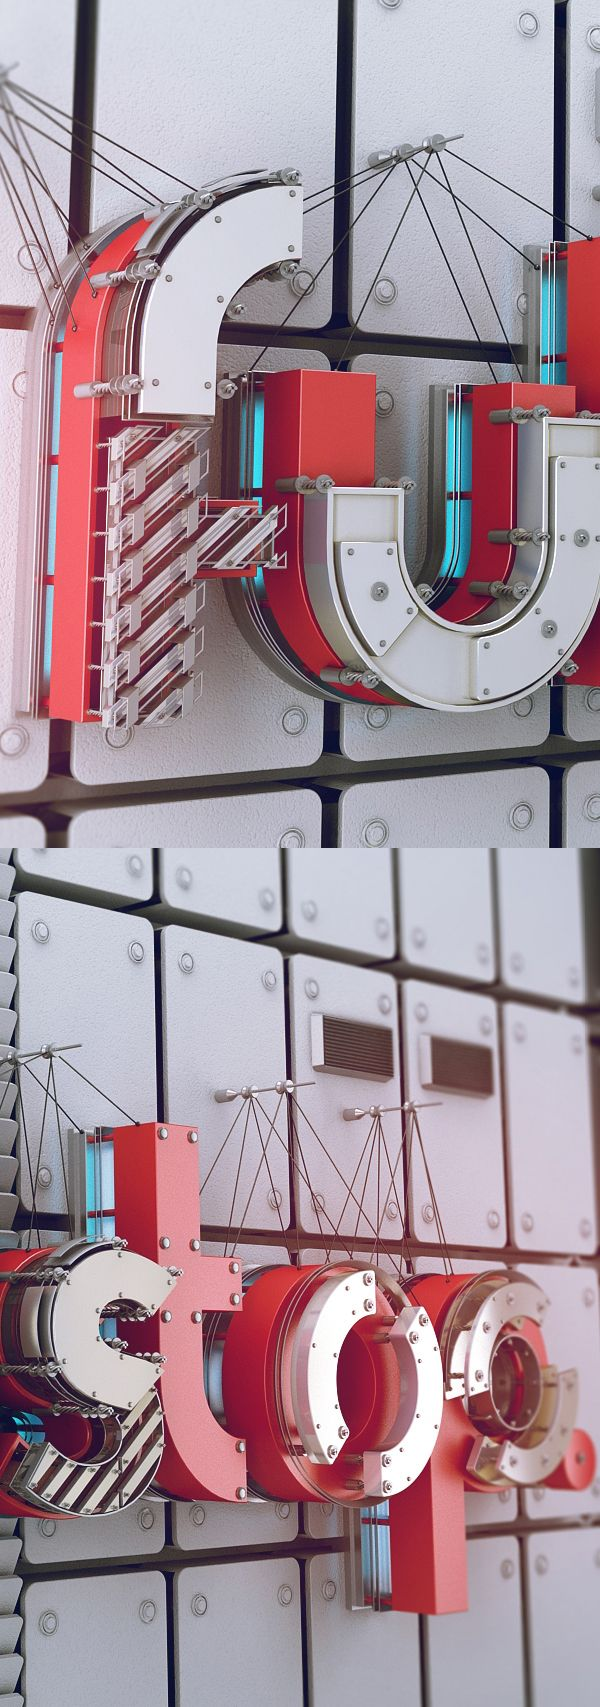 Fullstop on Wall on Behance